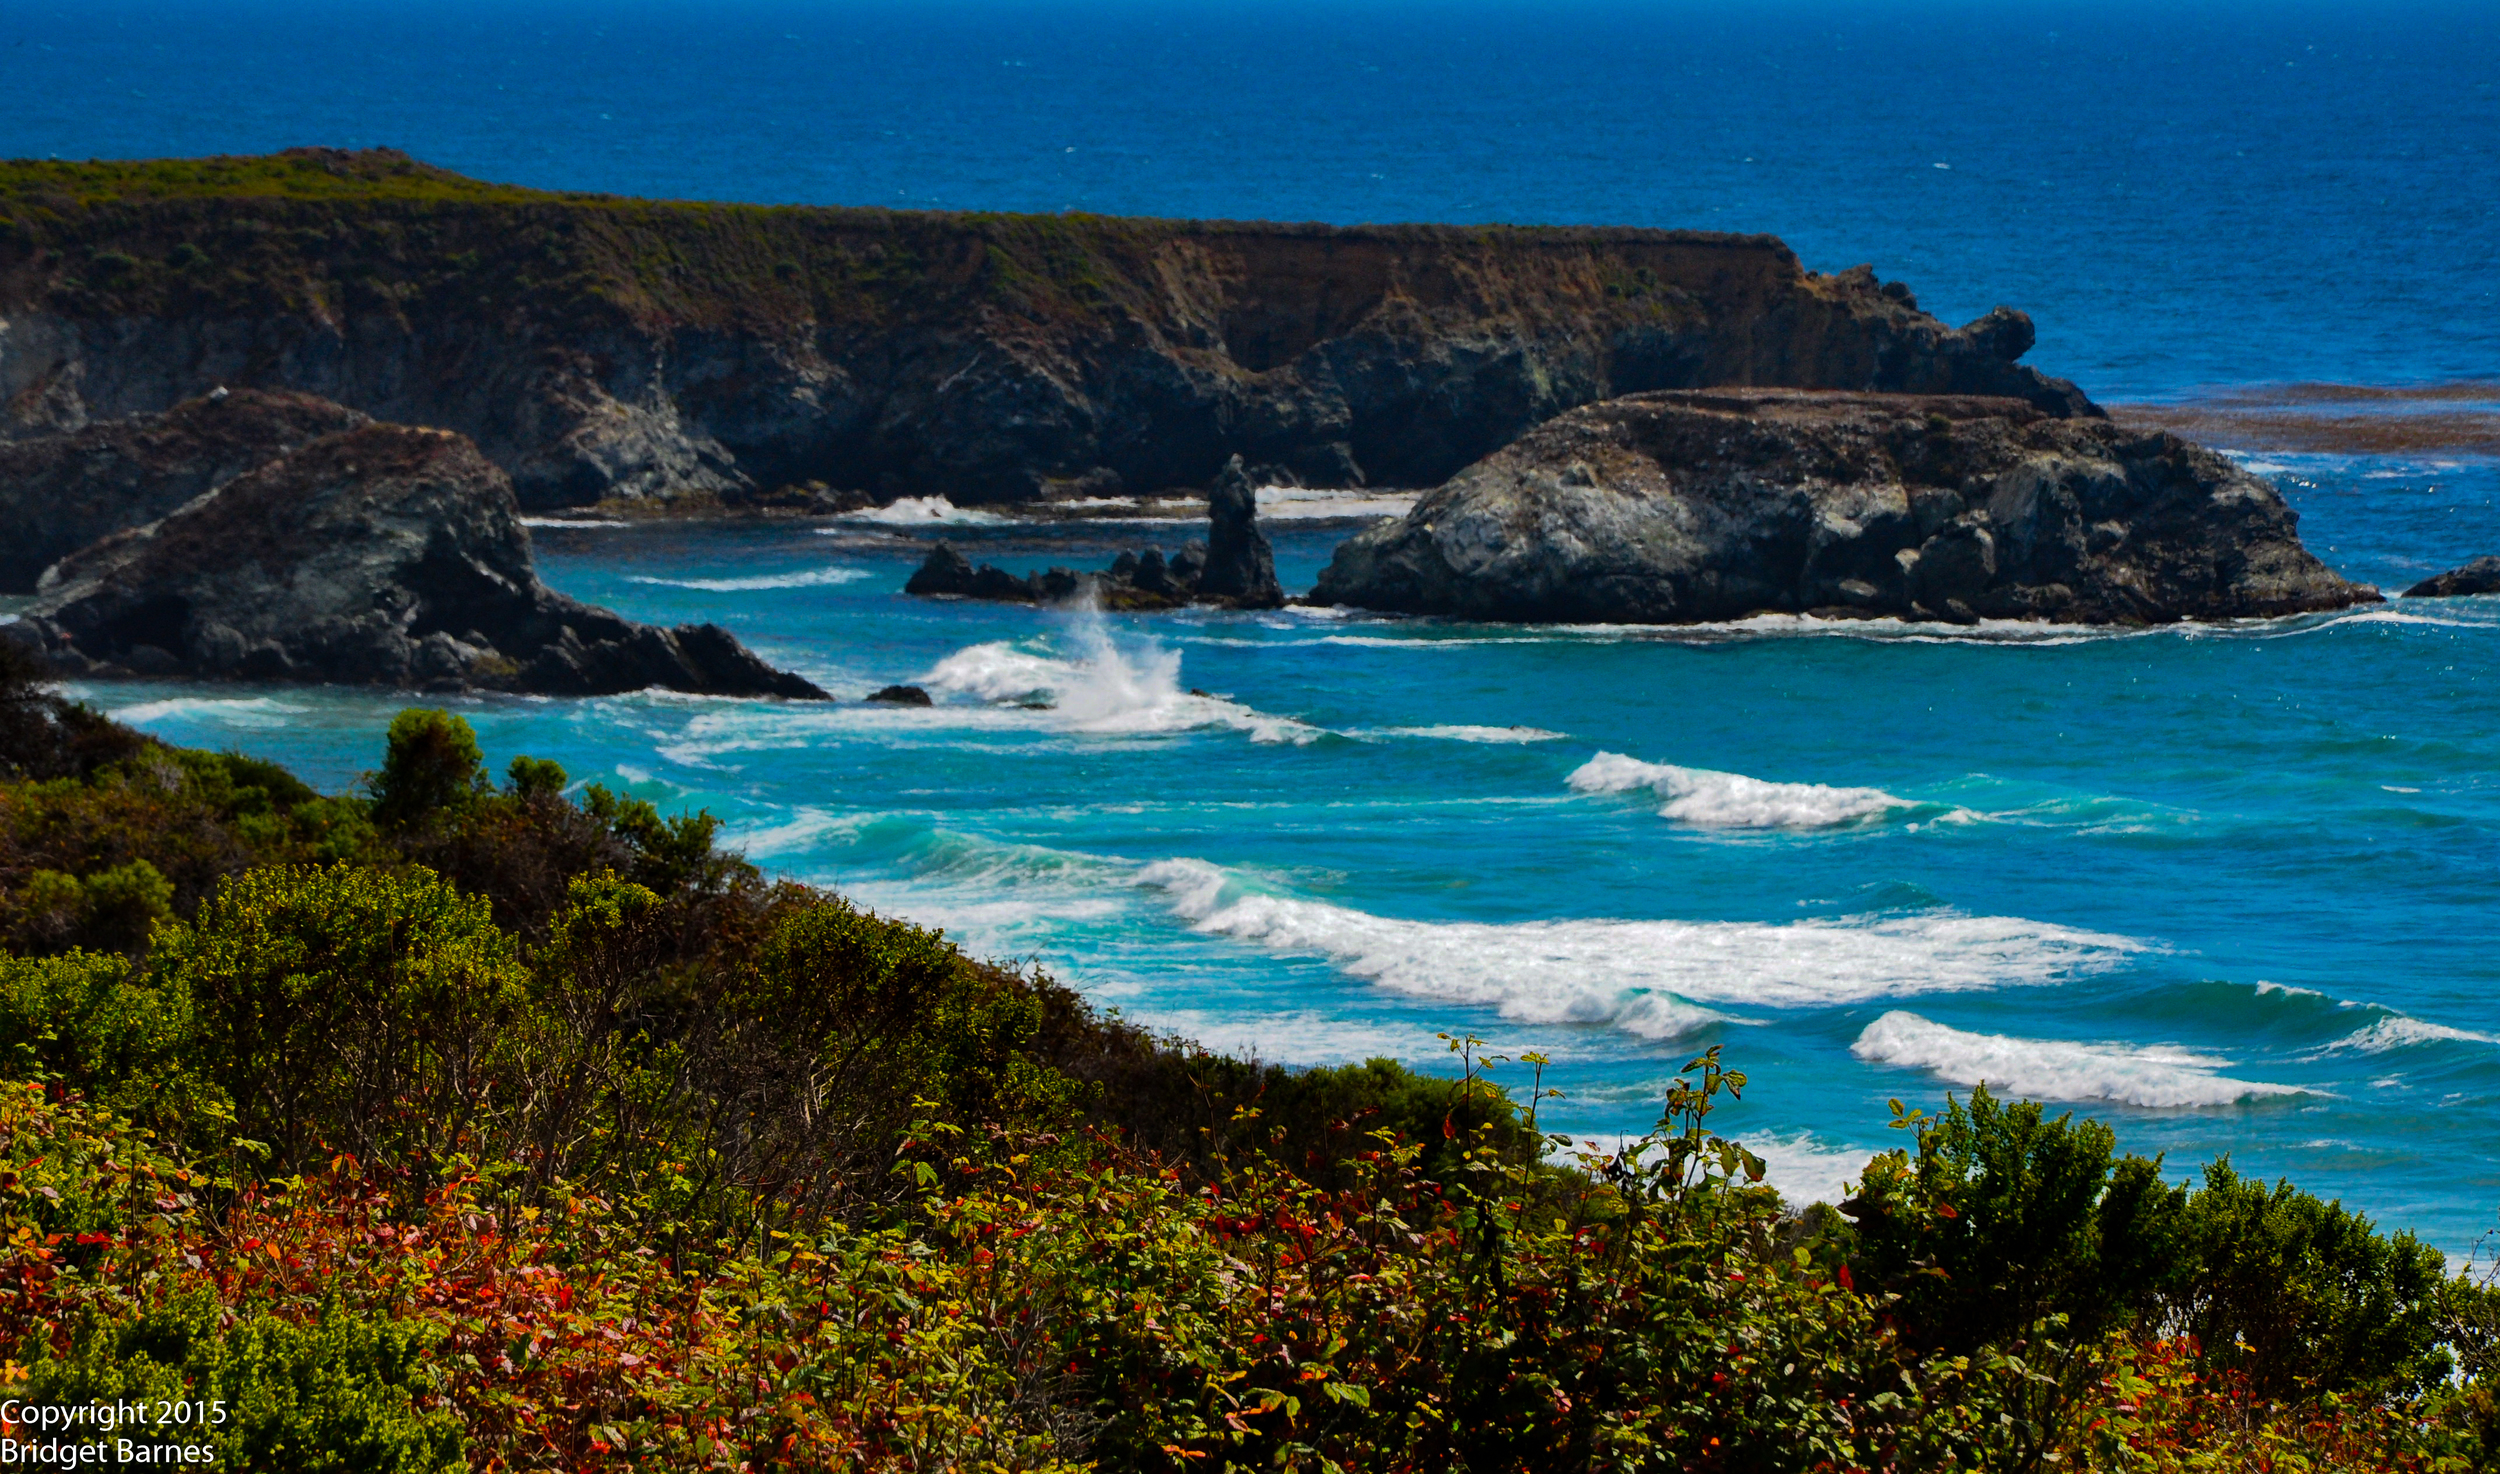 A view from the Pacific Coast Highway on the way to Monterey  ©Copyright 2015 Bridget Barnes